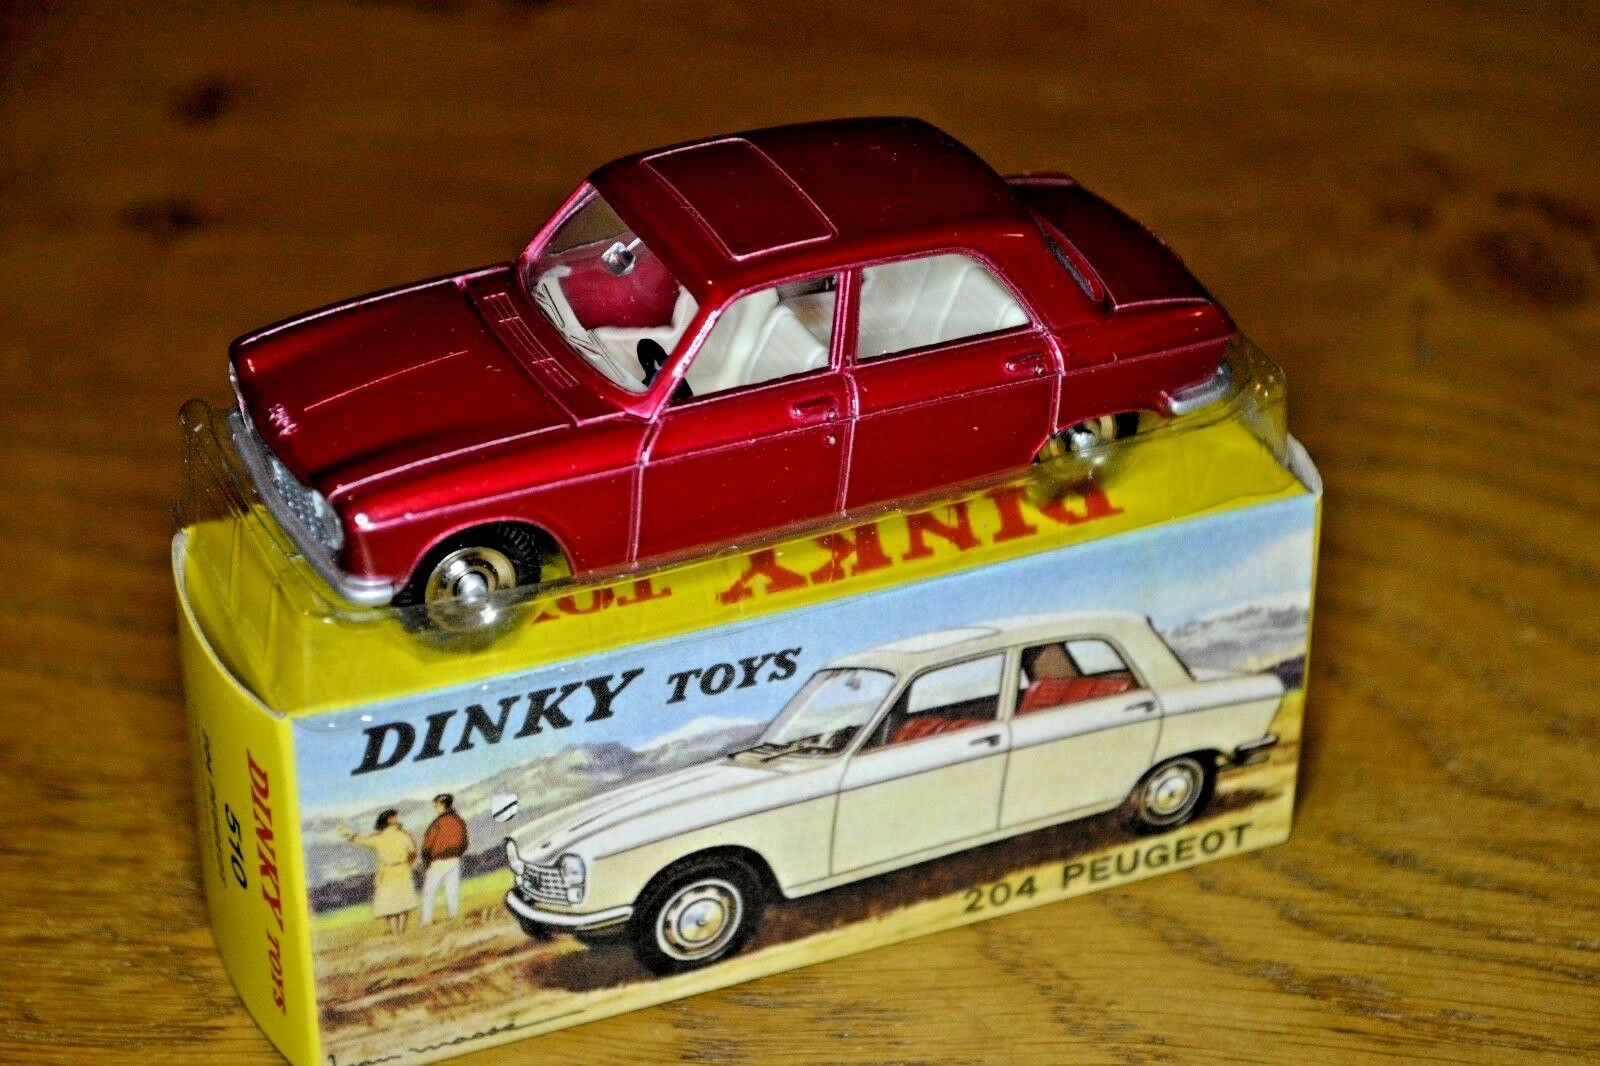 2014 French Dinky Toys Atlas Edition Diecast 204 Peugeot